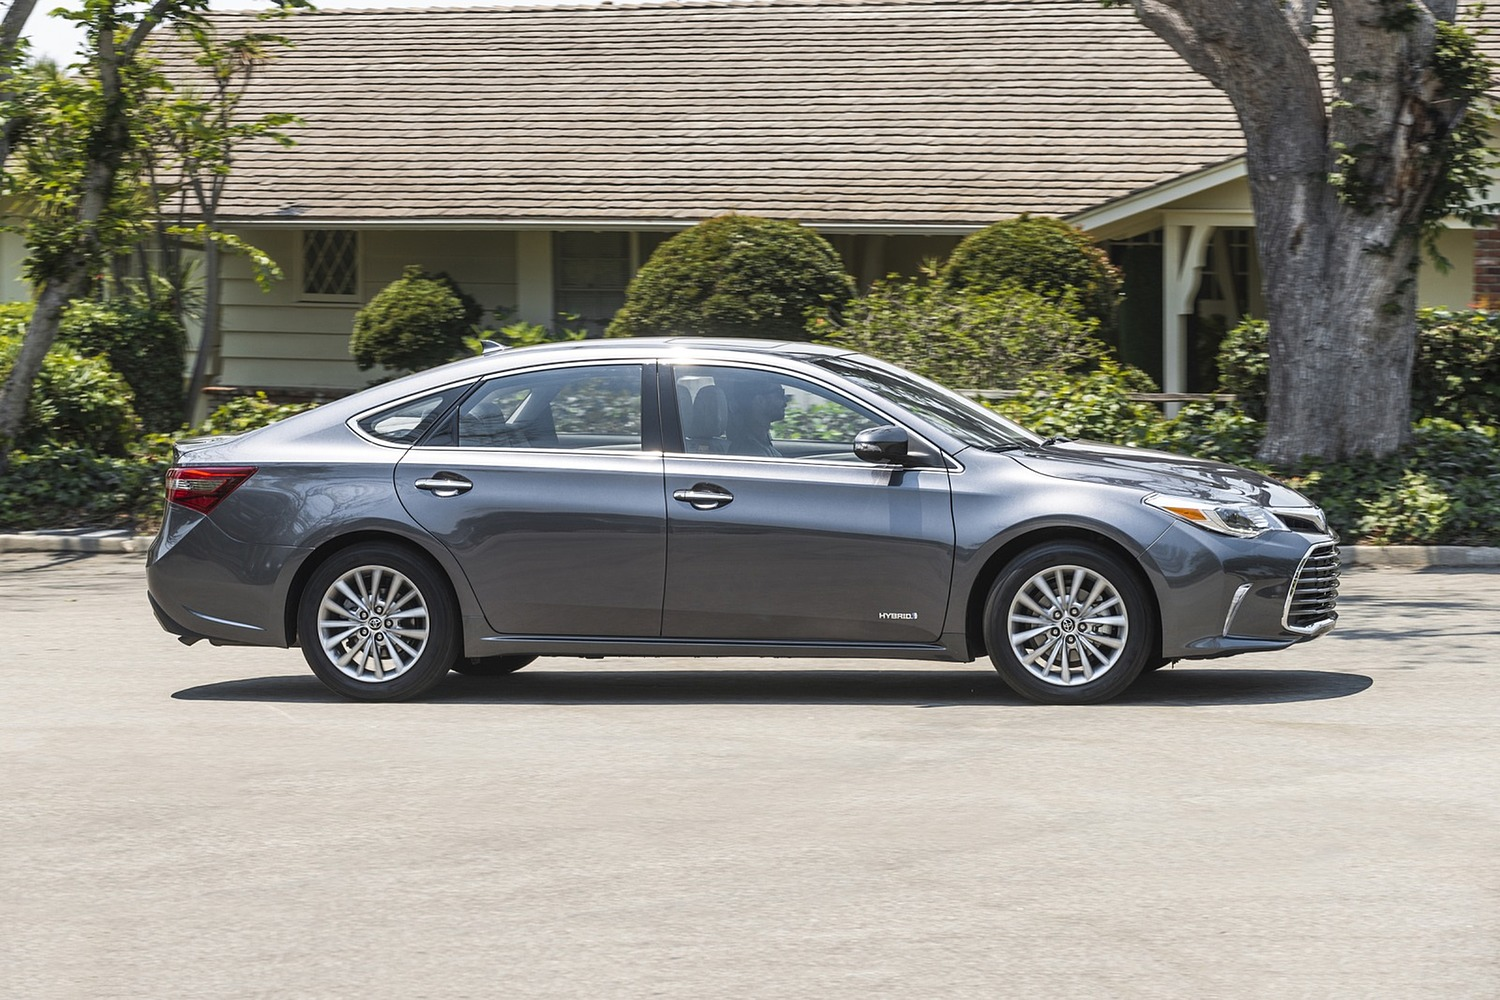 Toyota Avalon Hybrid Sedan Exterior Shown (2017 model year shown)